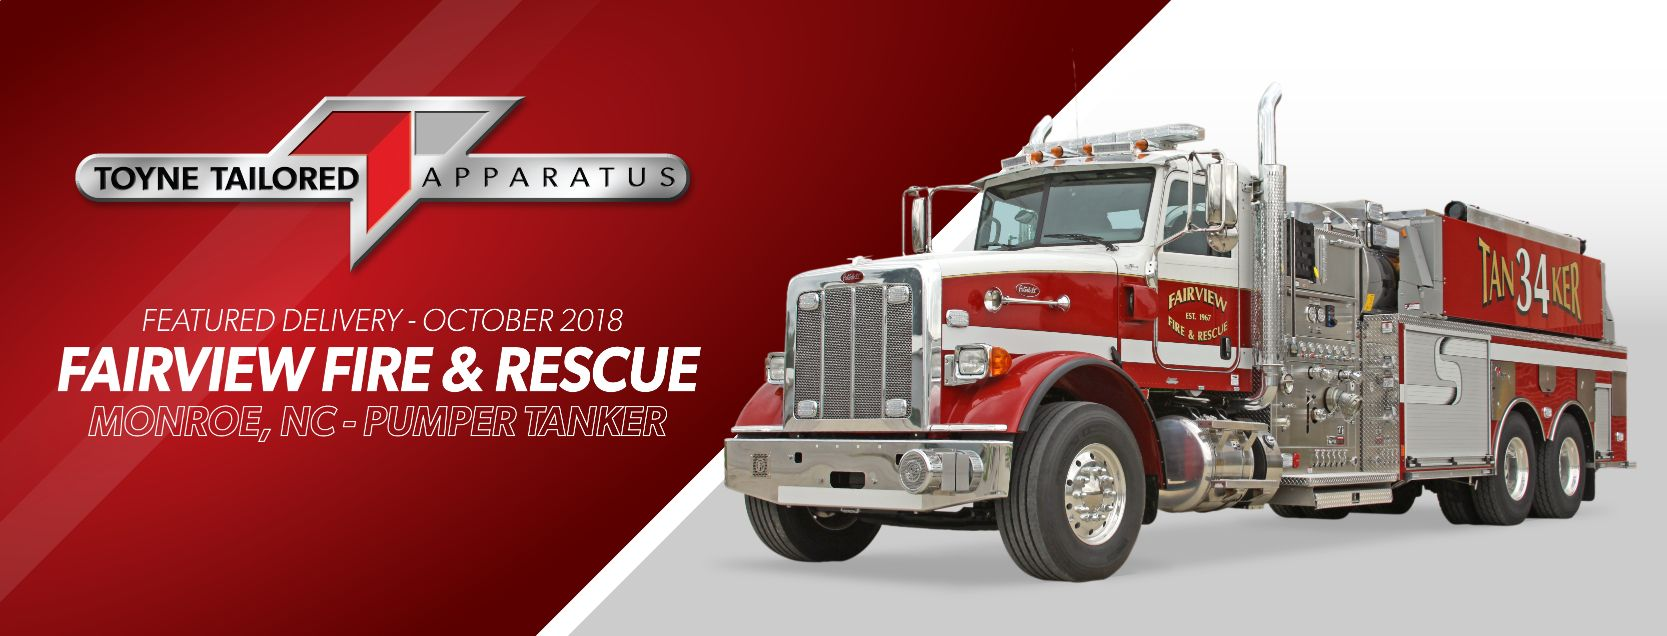 Featured Delivery Fairview Fire and Rescue